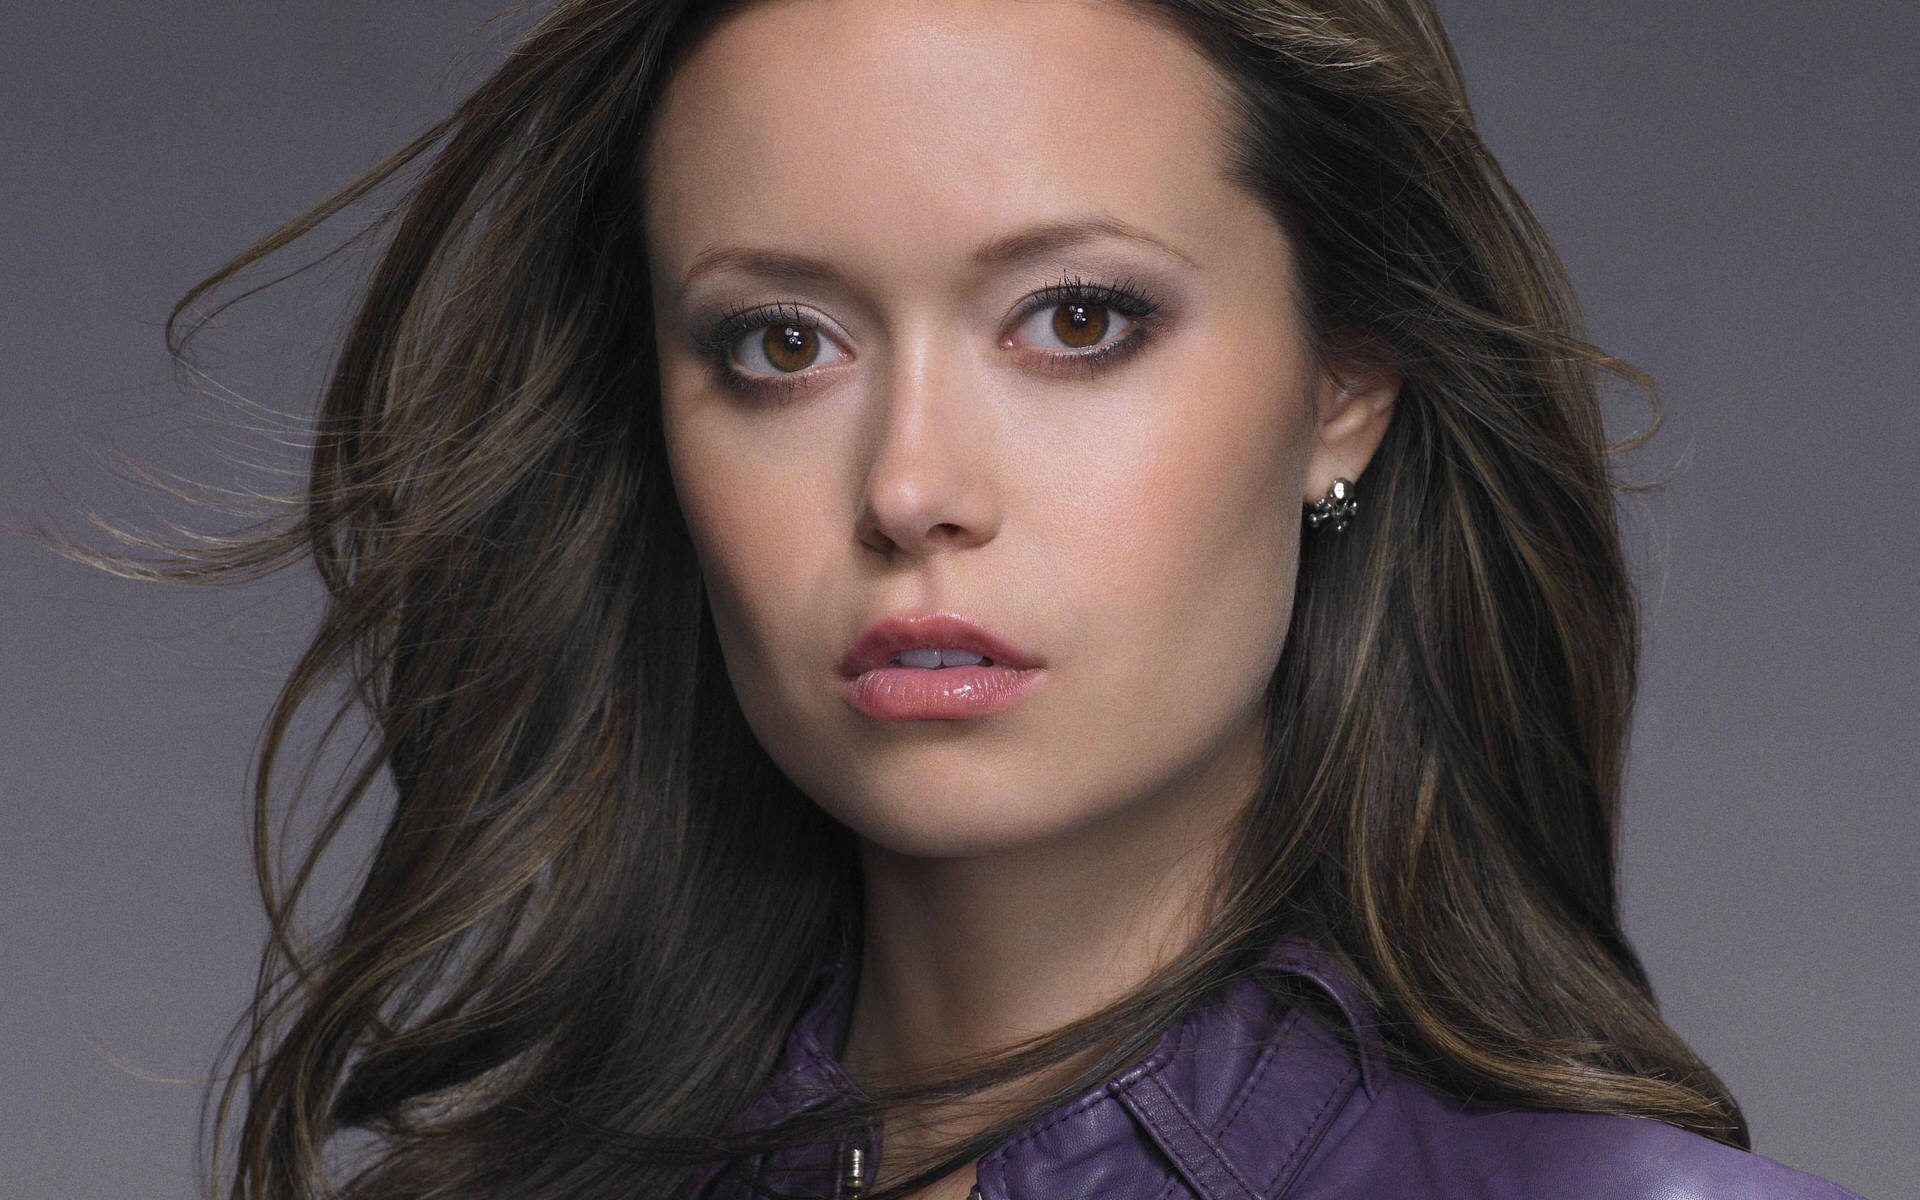 summer glau hd wallpapers for desktop download. Black Bedroom Furniture Sets. Home Design Ideas